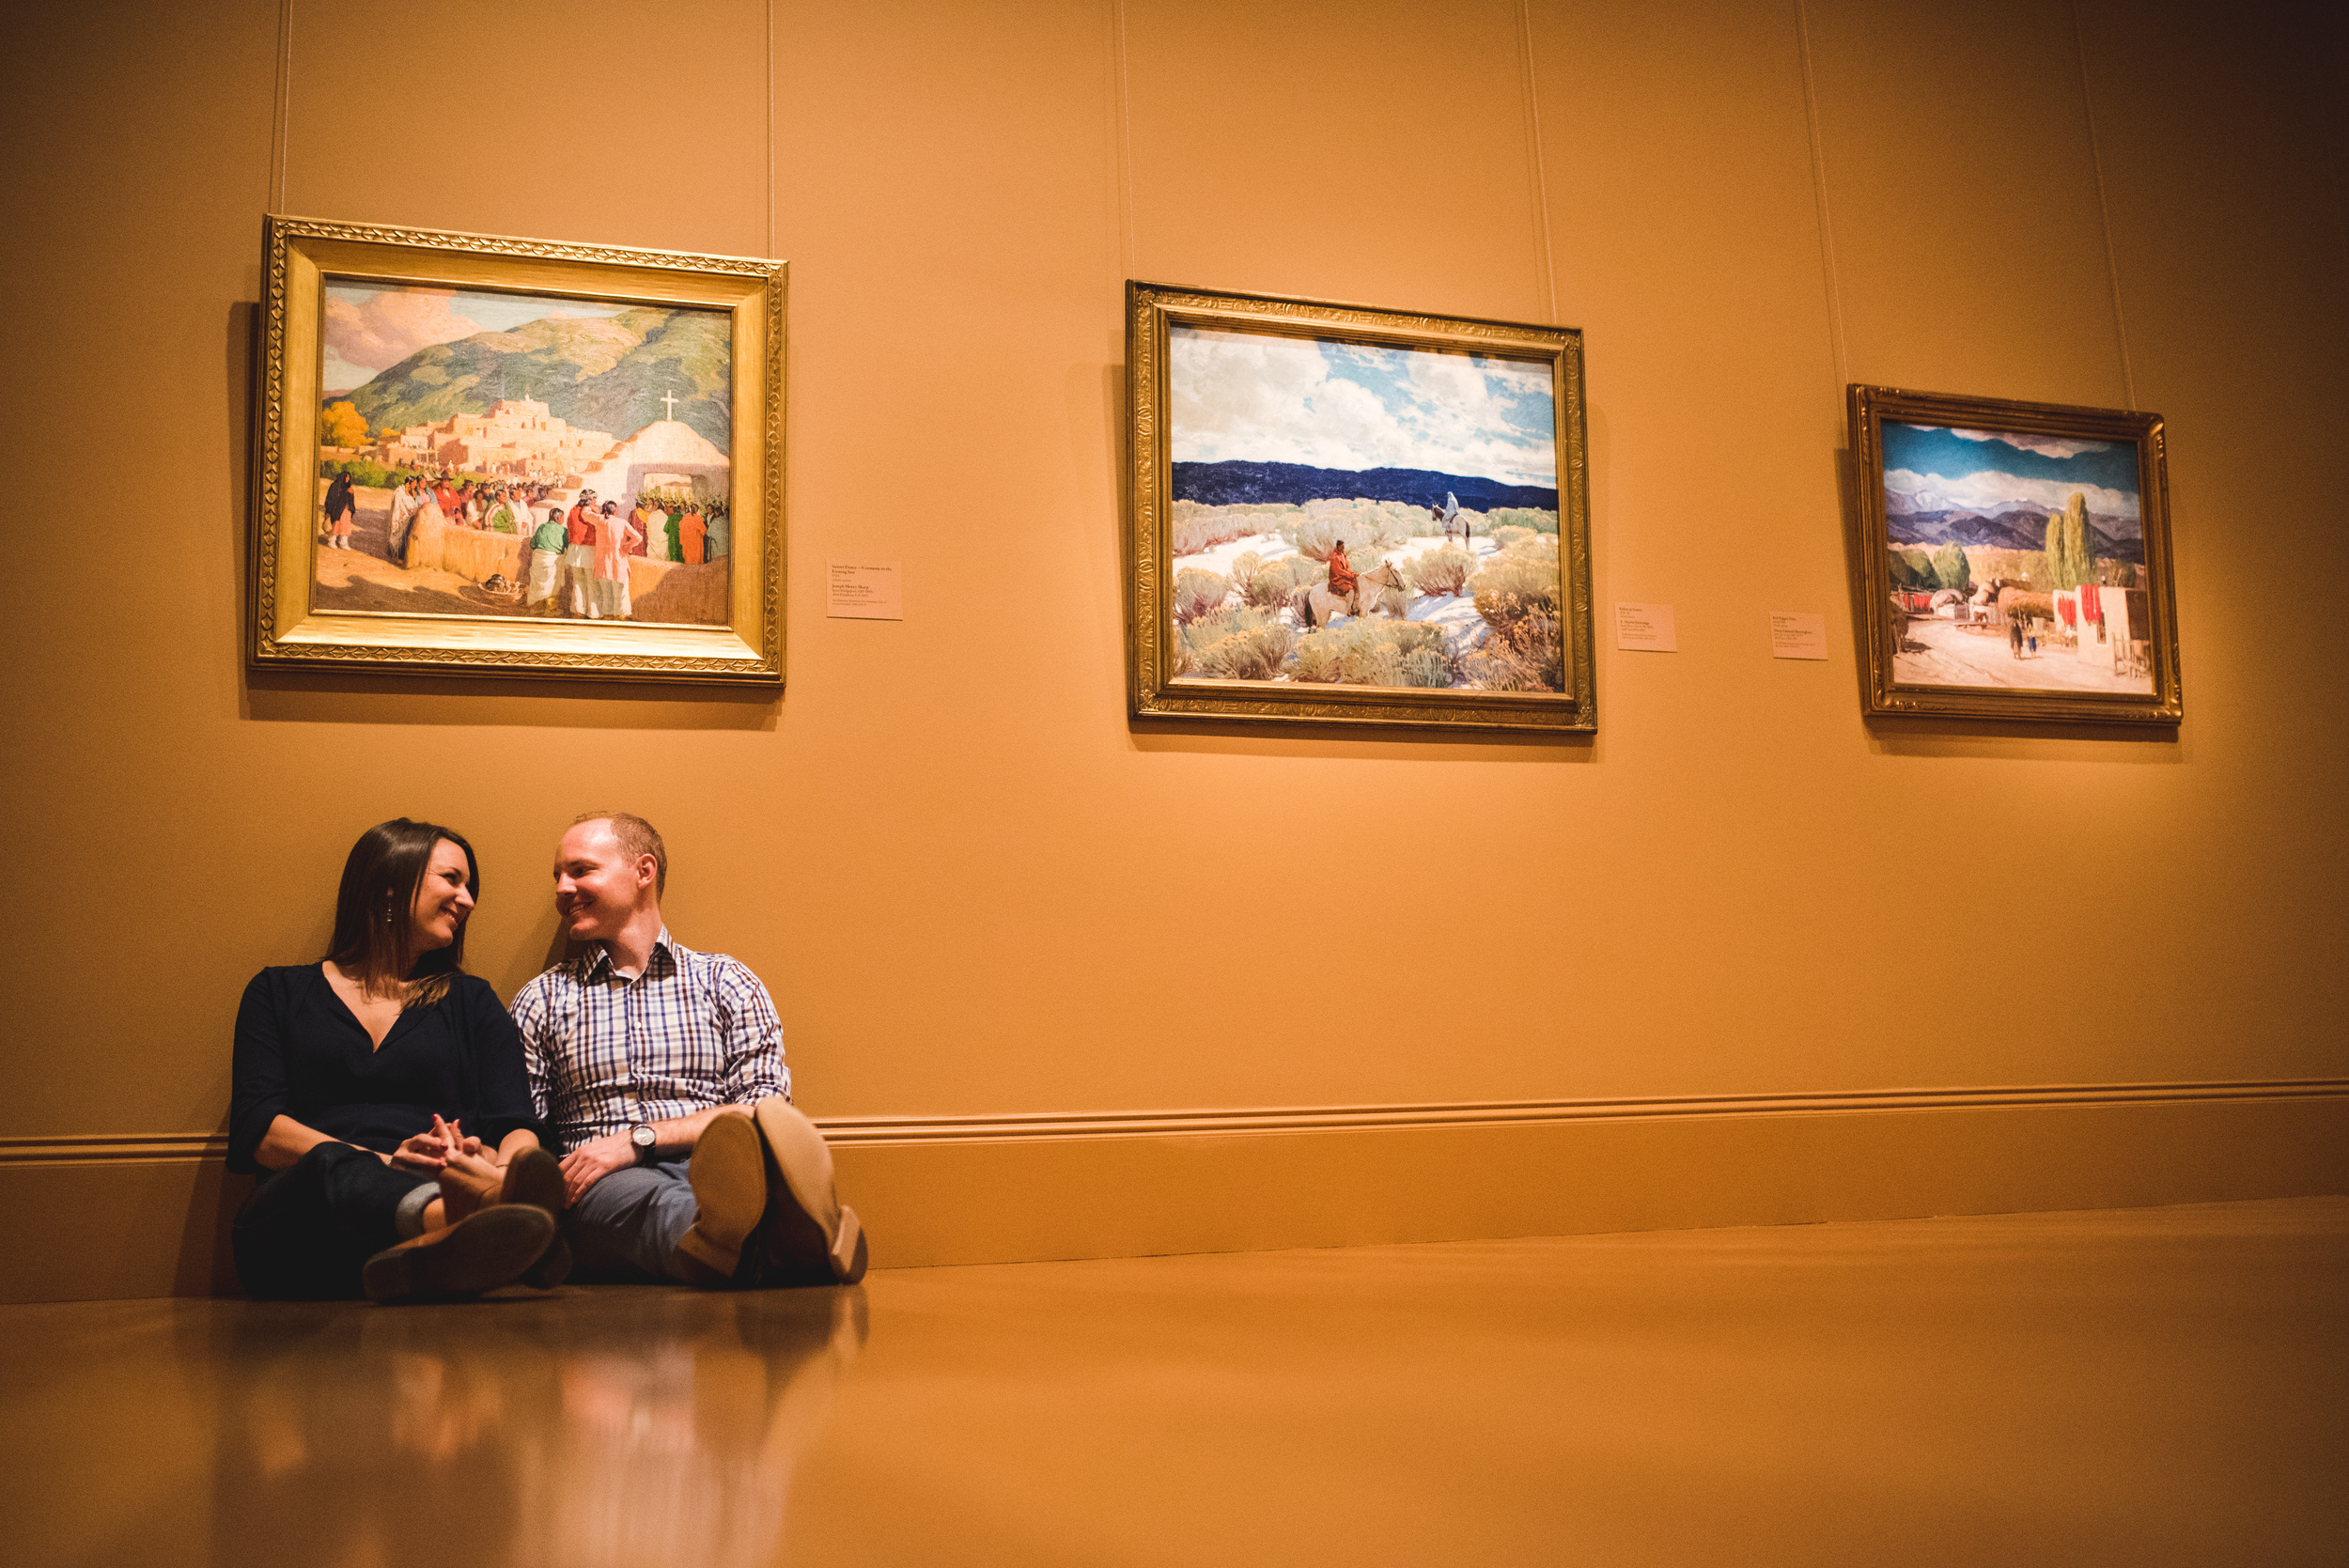 Smithsonian American Art Museum engagement session by Mantas Kubilinskas-18.jpg